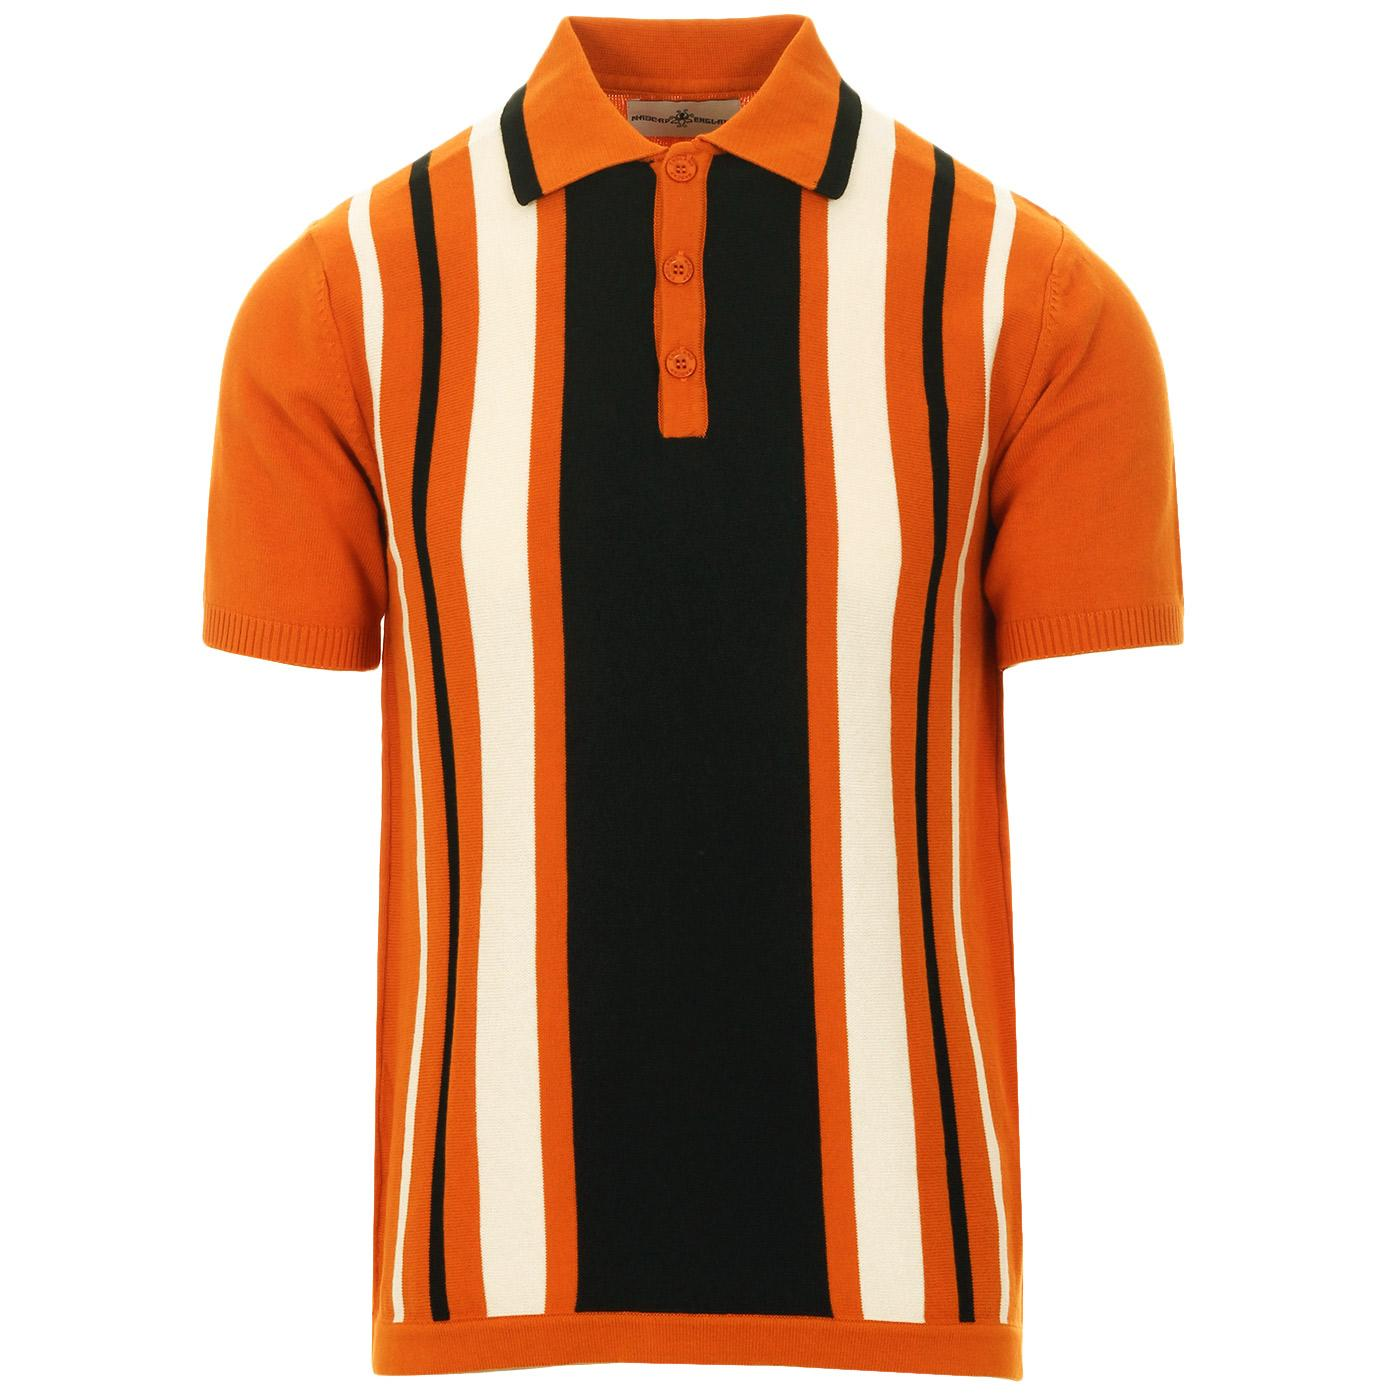 Madcap England Folklore 60s Mod Stripe Panel Knitted Polo Shirt in Marmalade